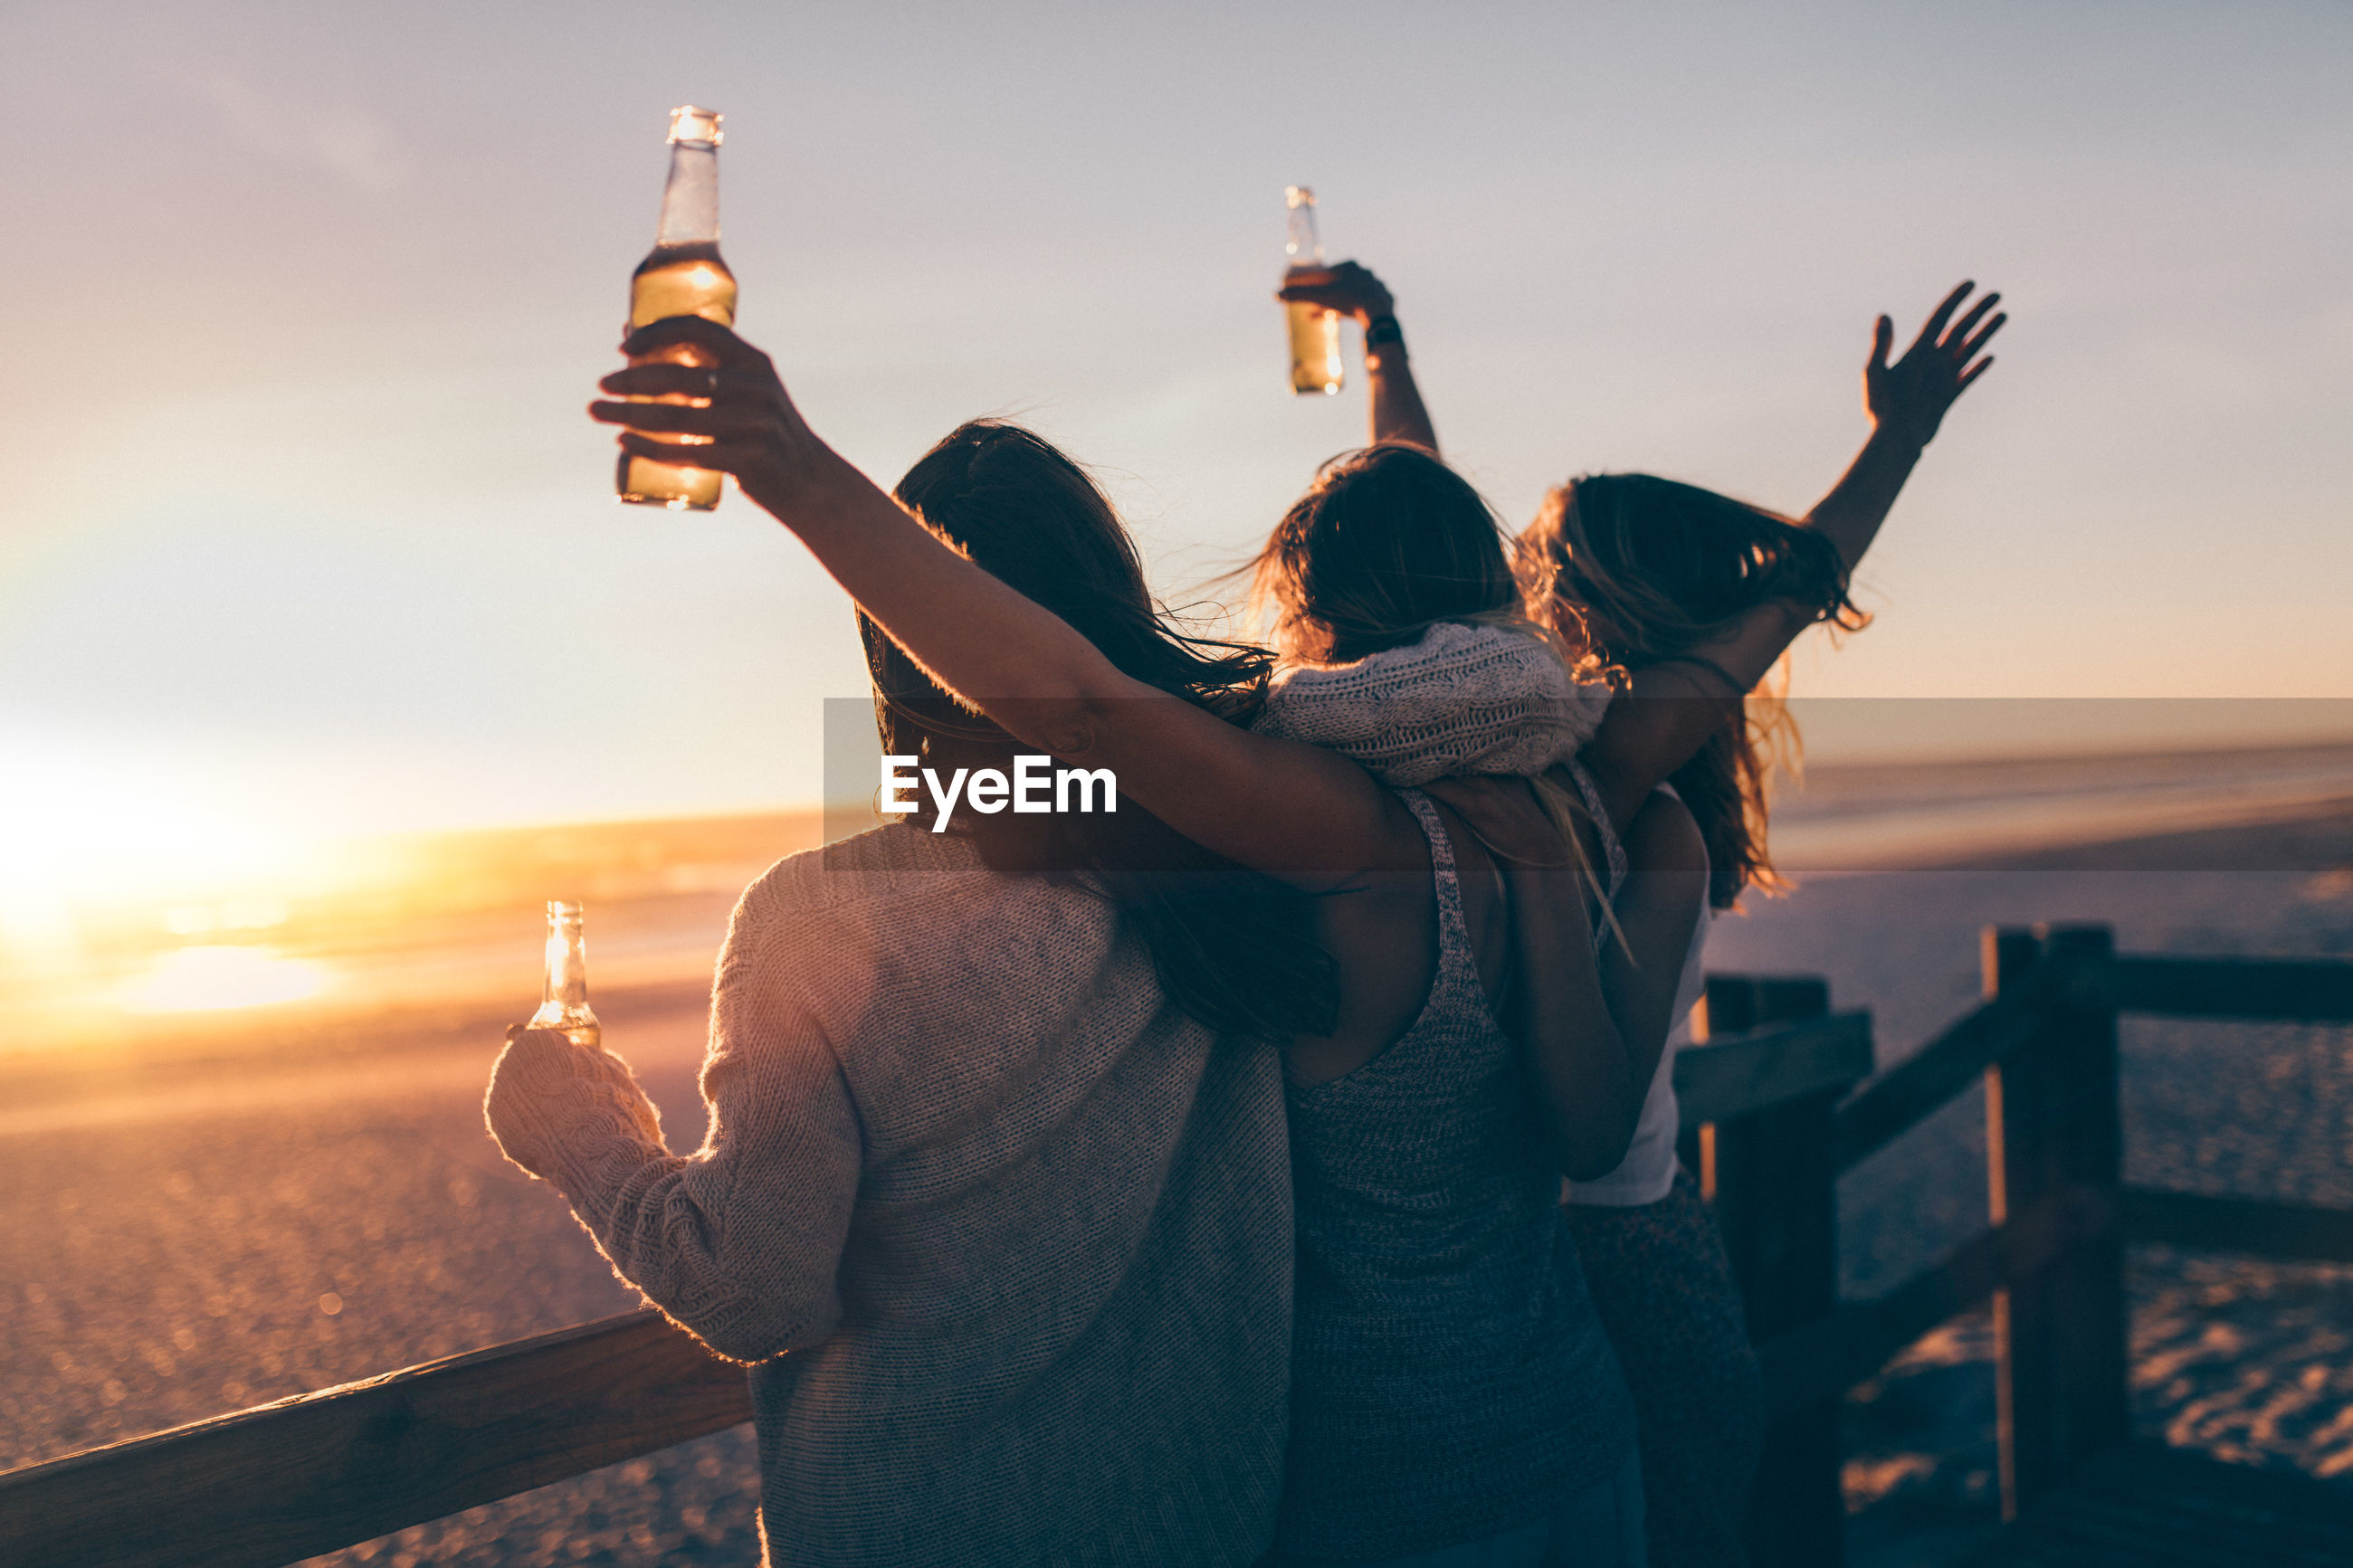 Women holding beer bottles while standing by railing against sea during sunset